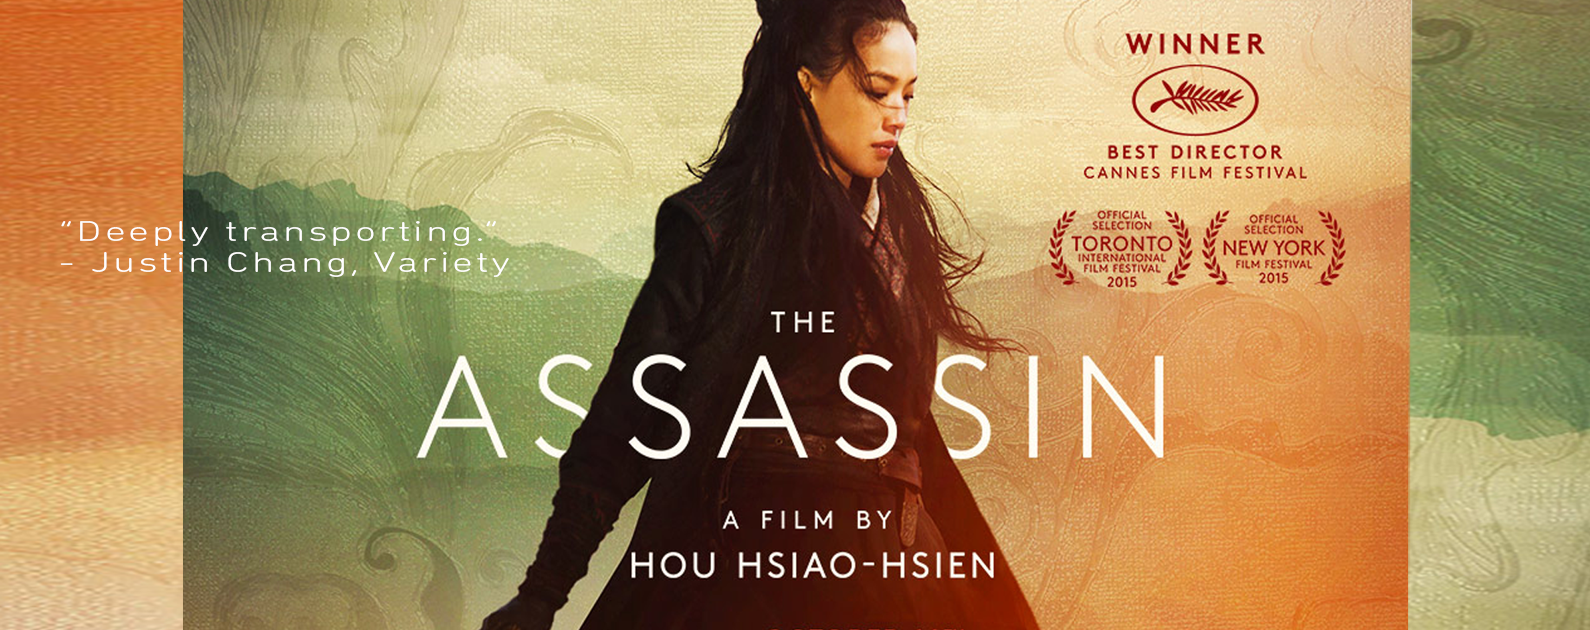 New Showtimes Added! Taiwan's Acclaimed Thriller, The Assassin, Now Playing Until January 14th